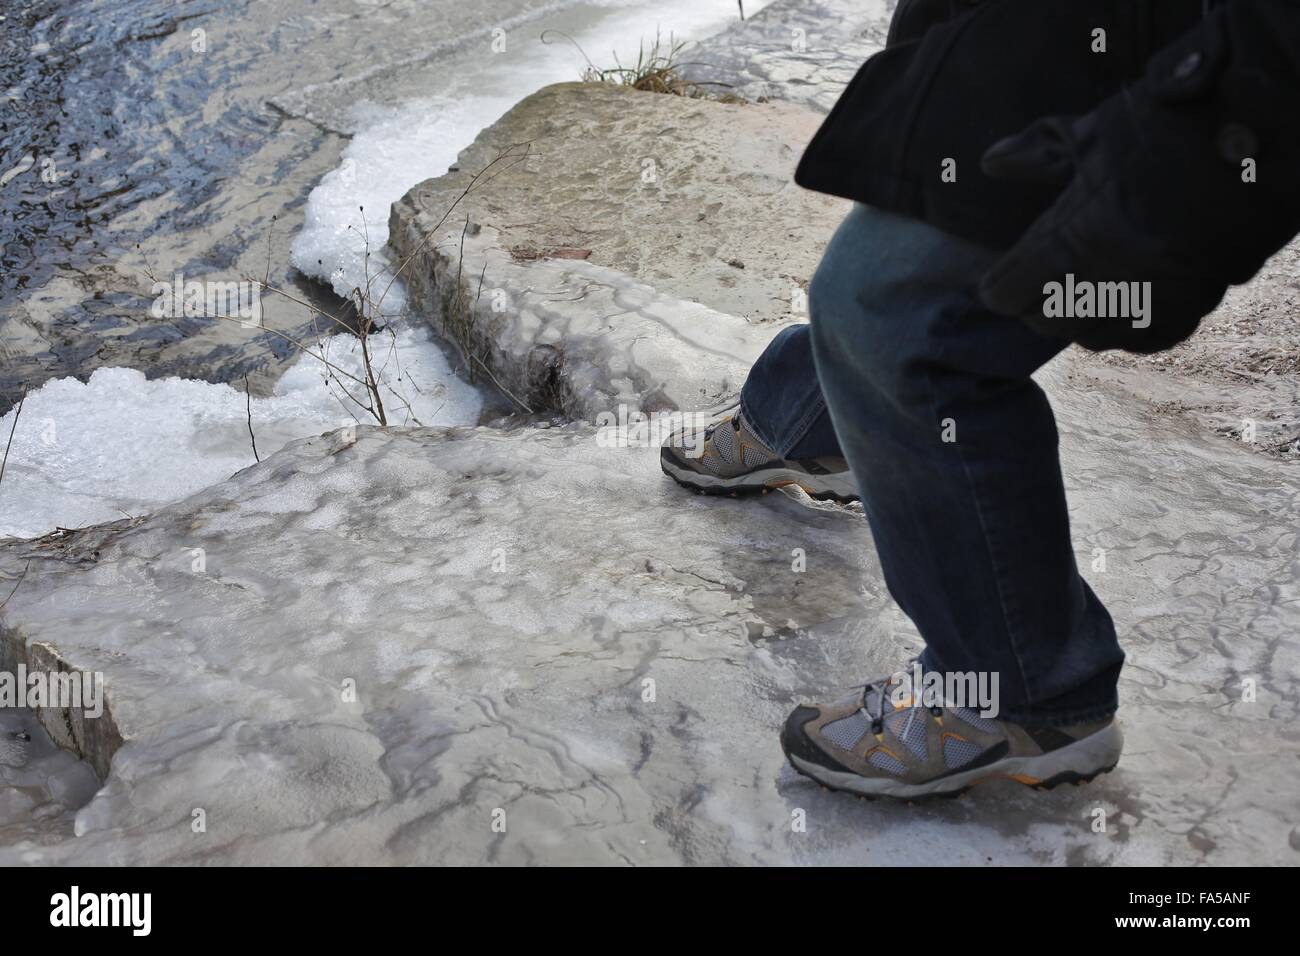 A man slipping on an icy rock. - Stock Image